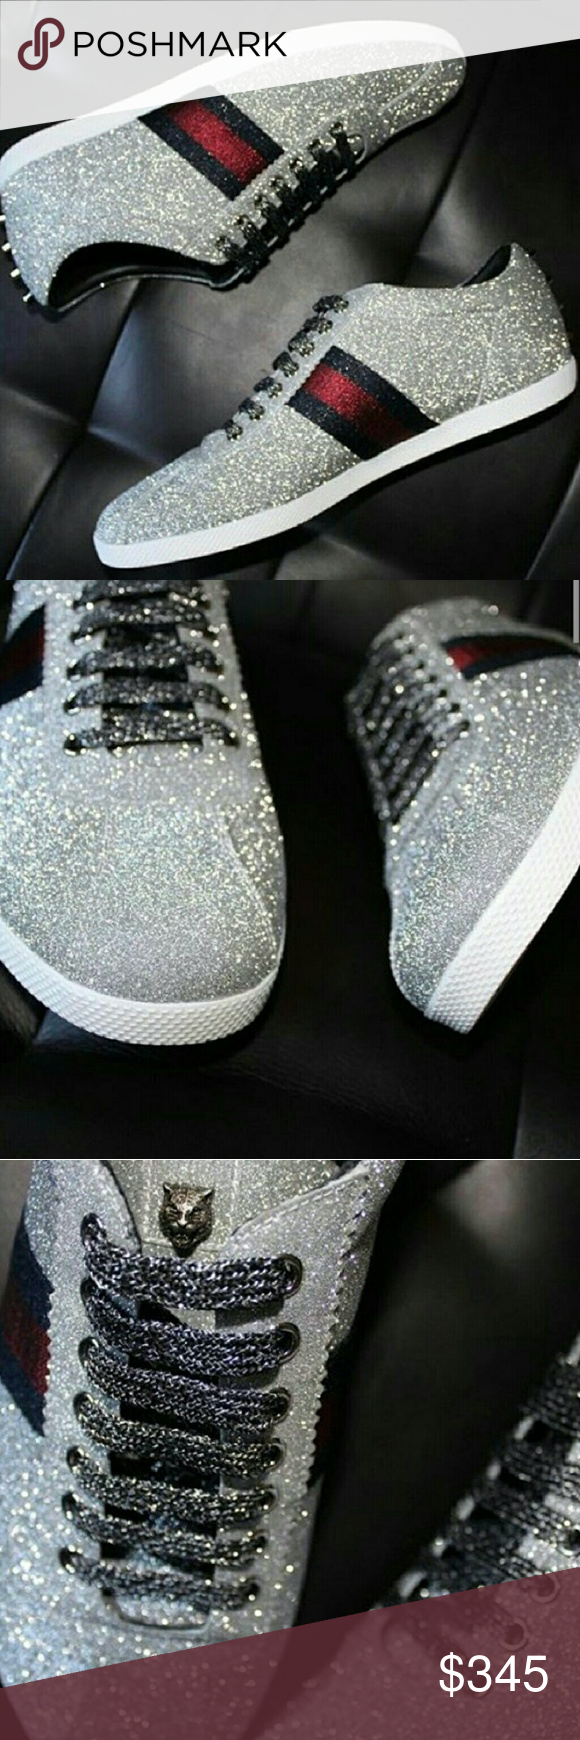 5b2769f05d3 Gucci glitter studded sneakers size 12 Low-top sneaker in a sparkling fabric  with Web